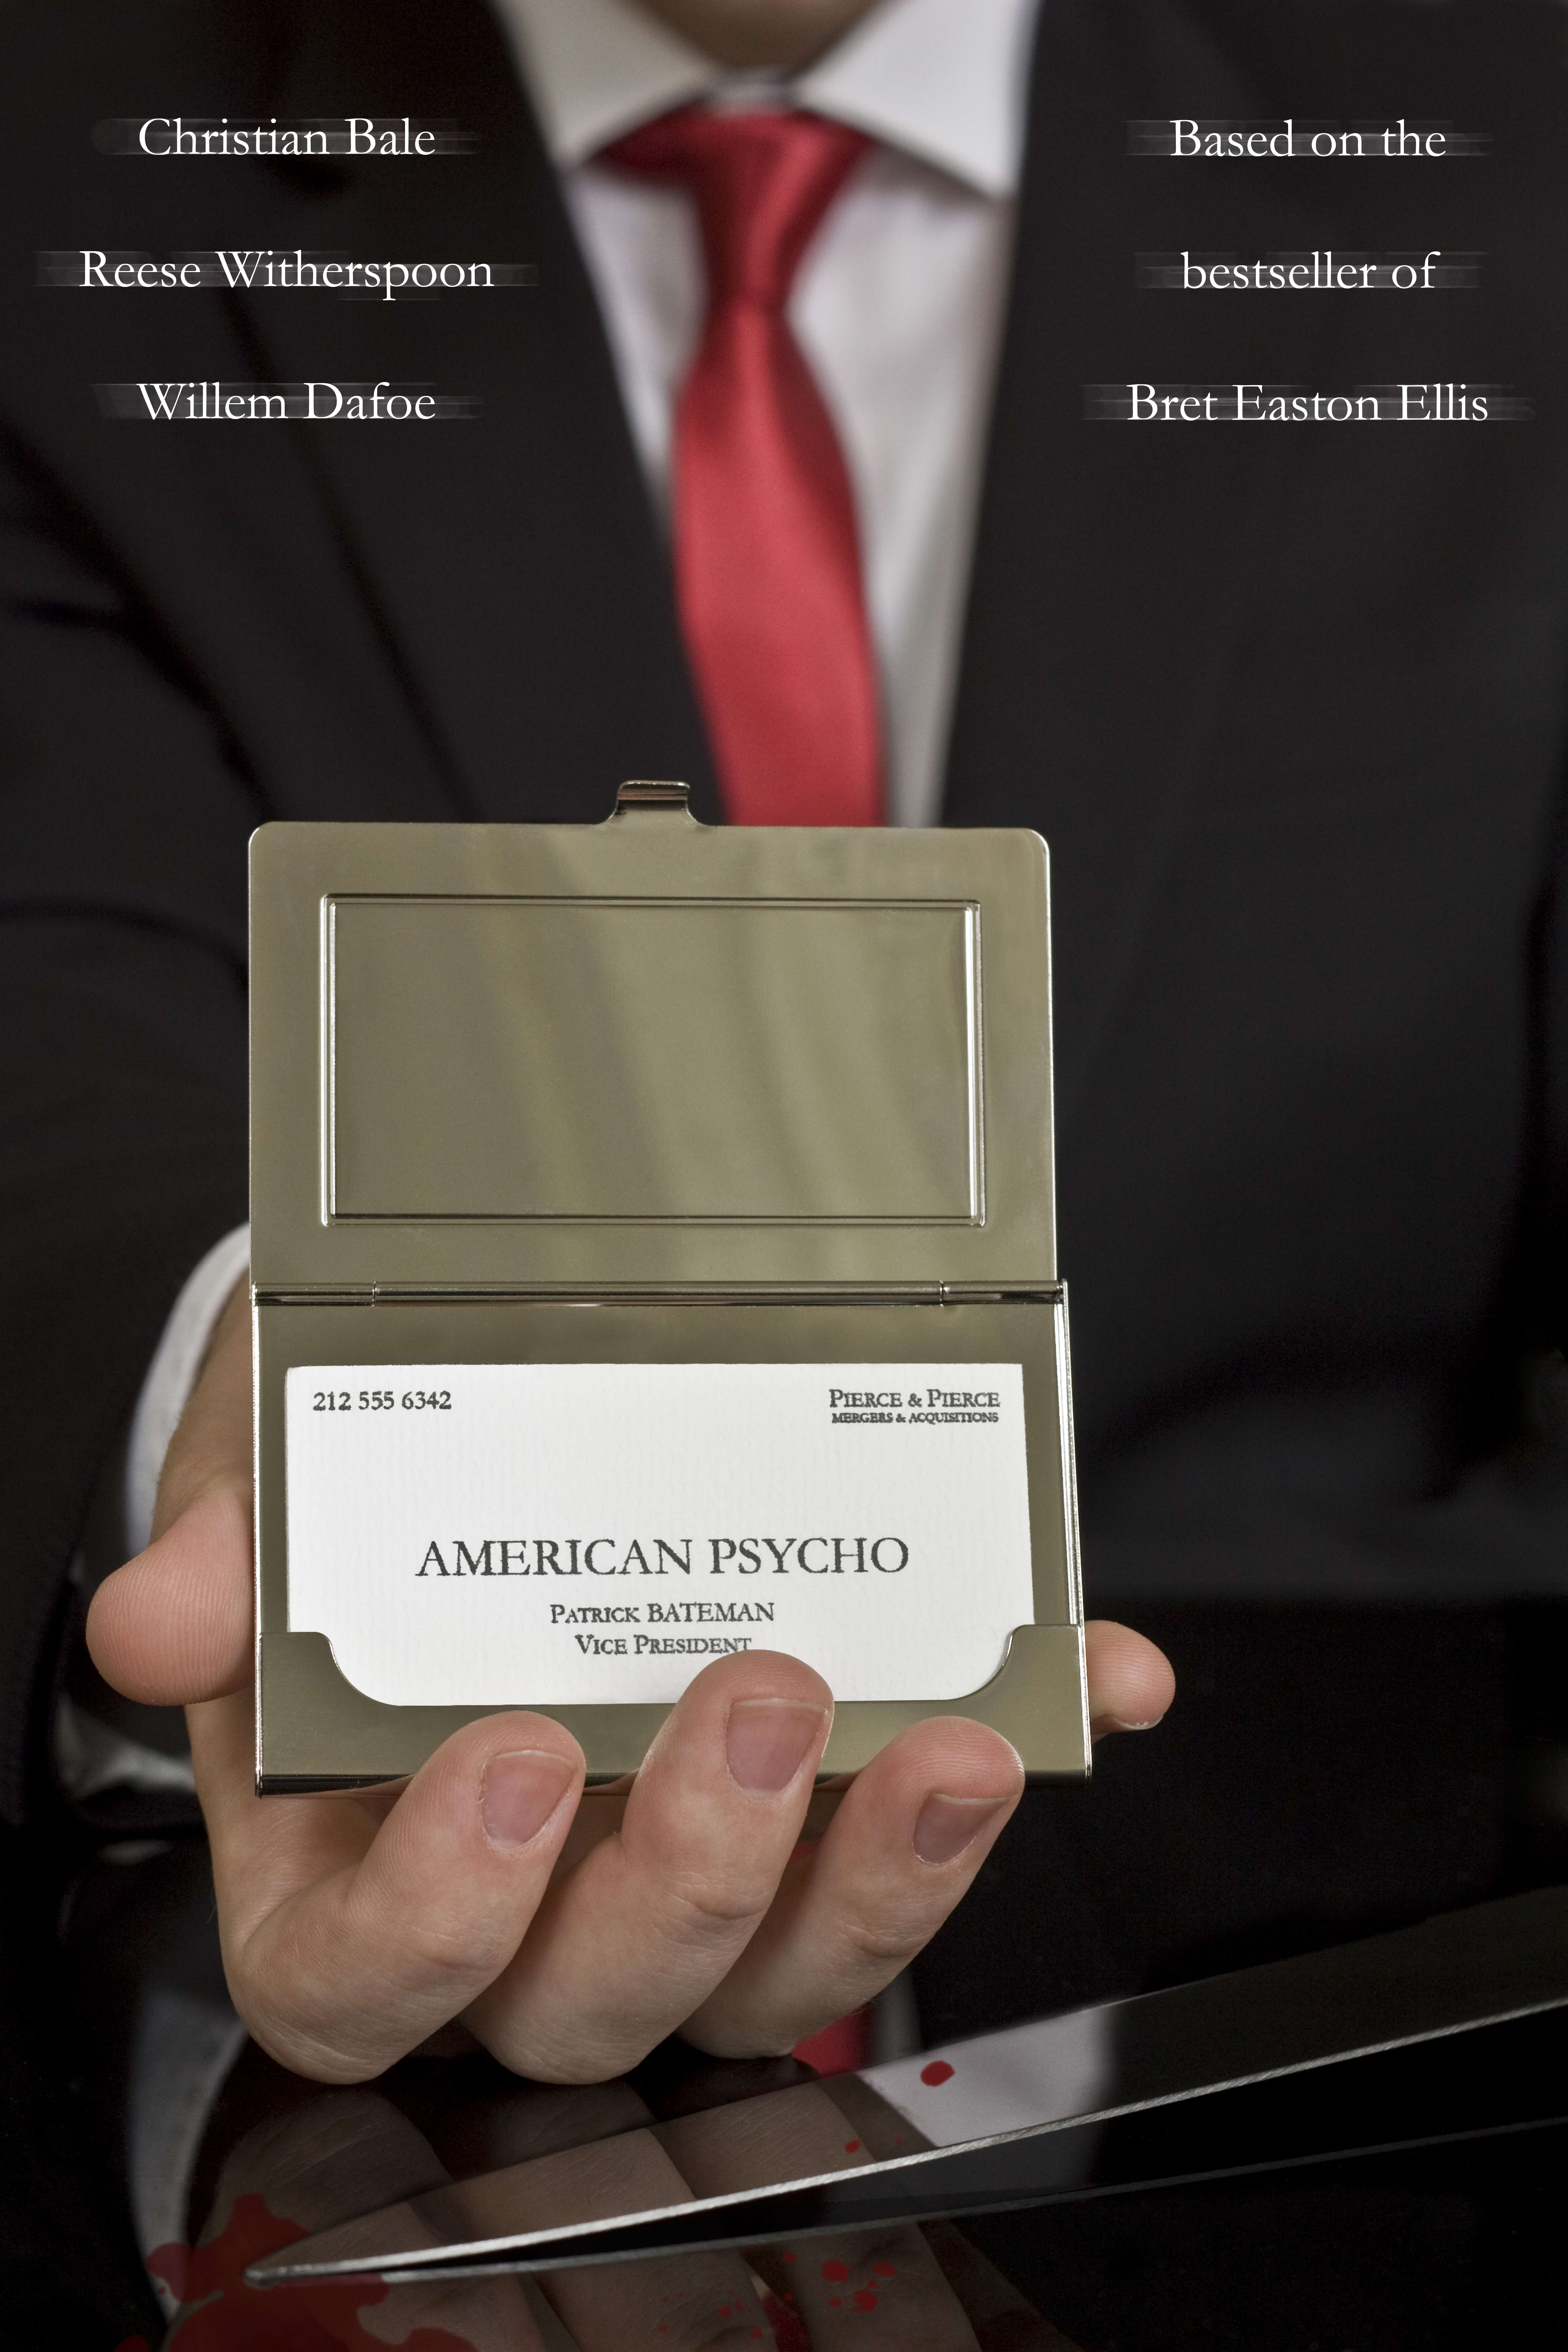 American psycho movie poster by maikel s on deviantart american psycho movie poster by maikel s colourmoves